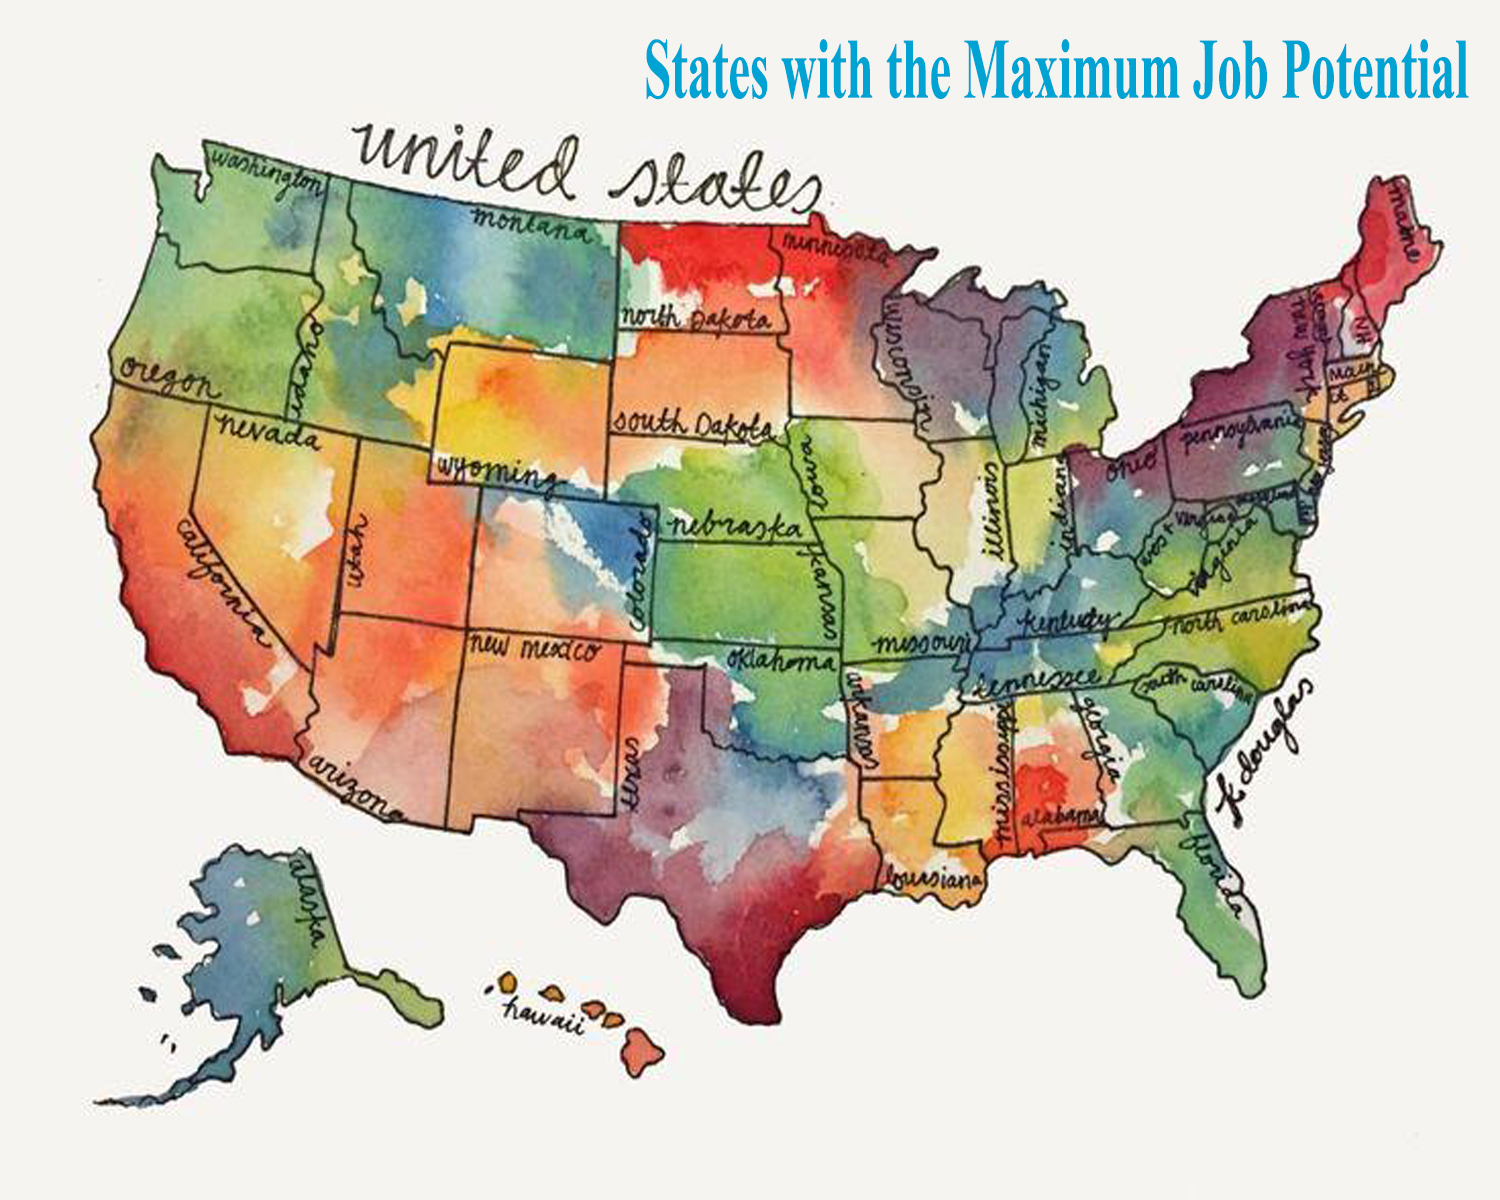 best states in the U.S with the maximum job potential